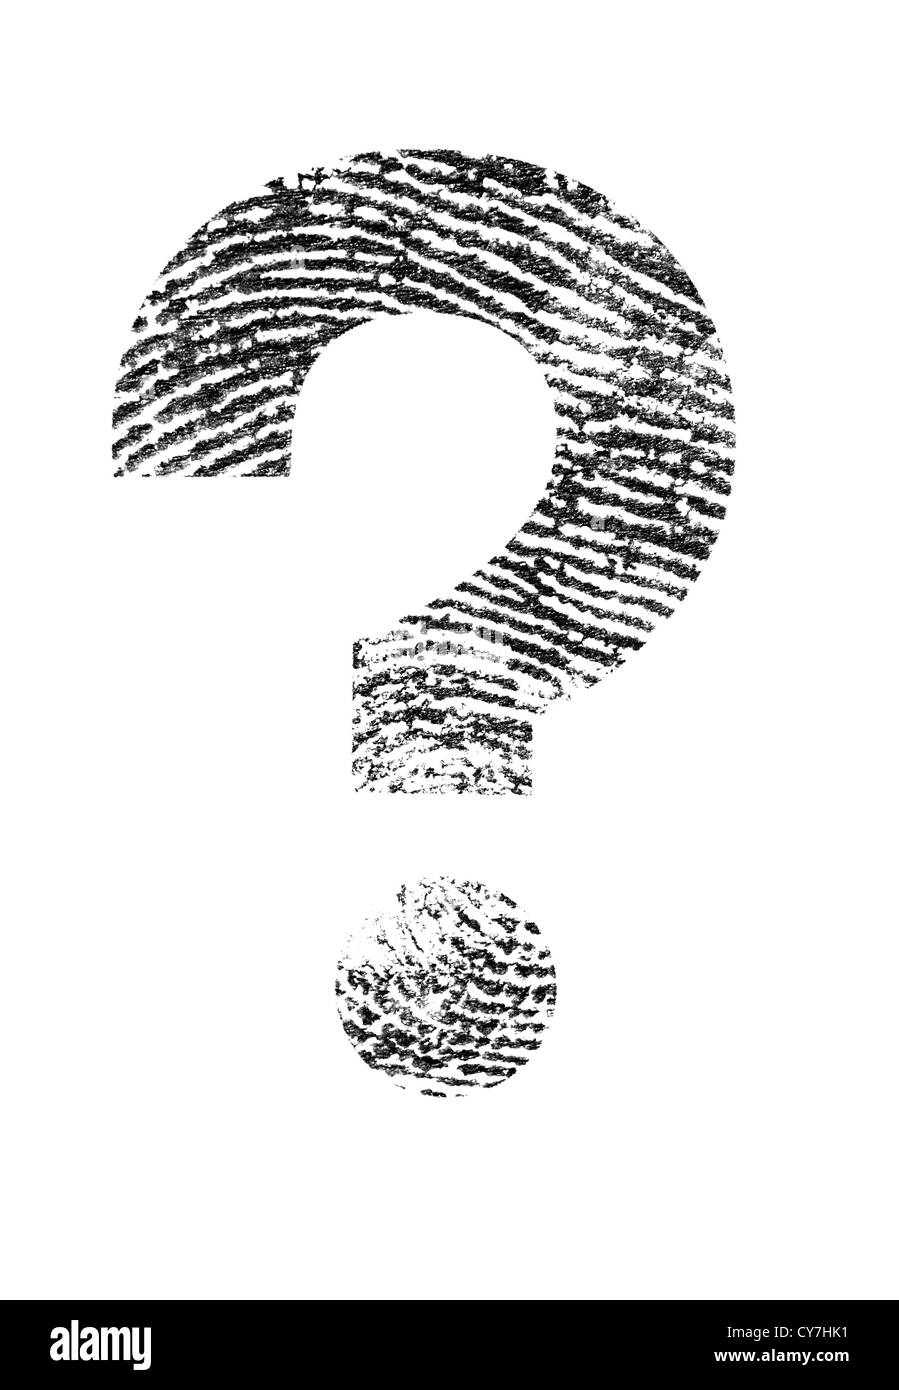 A Question mark made of a real fingerprint. - Stock Image